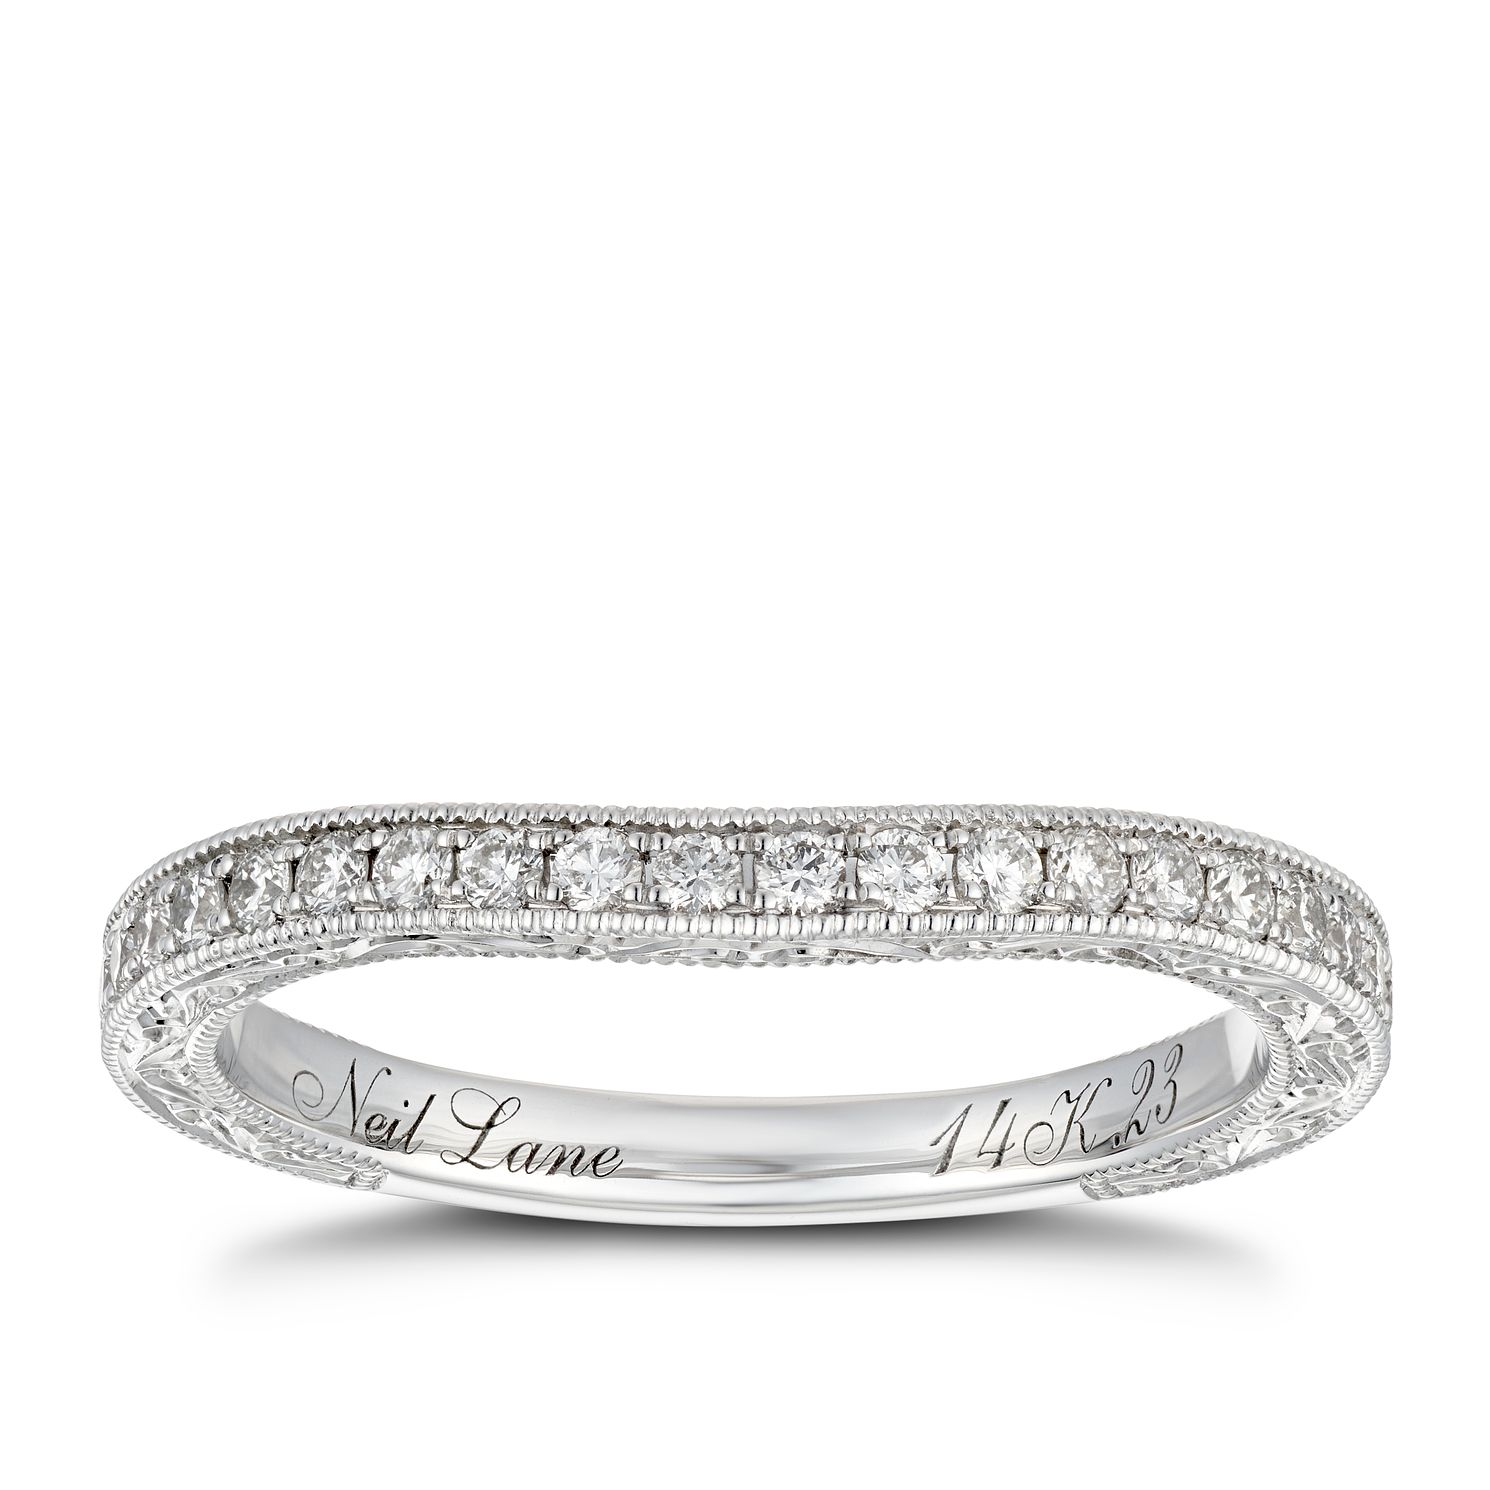 Neil Lane 14ct White Gold 0.23ct Diamond Shaped Band - Product number 8592713